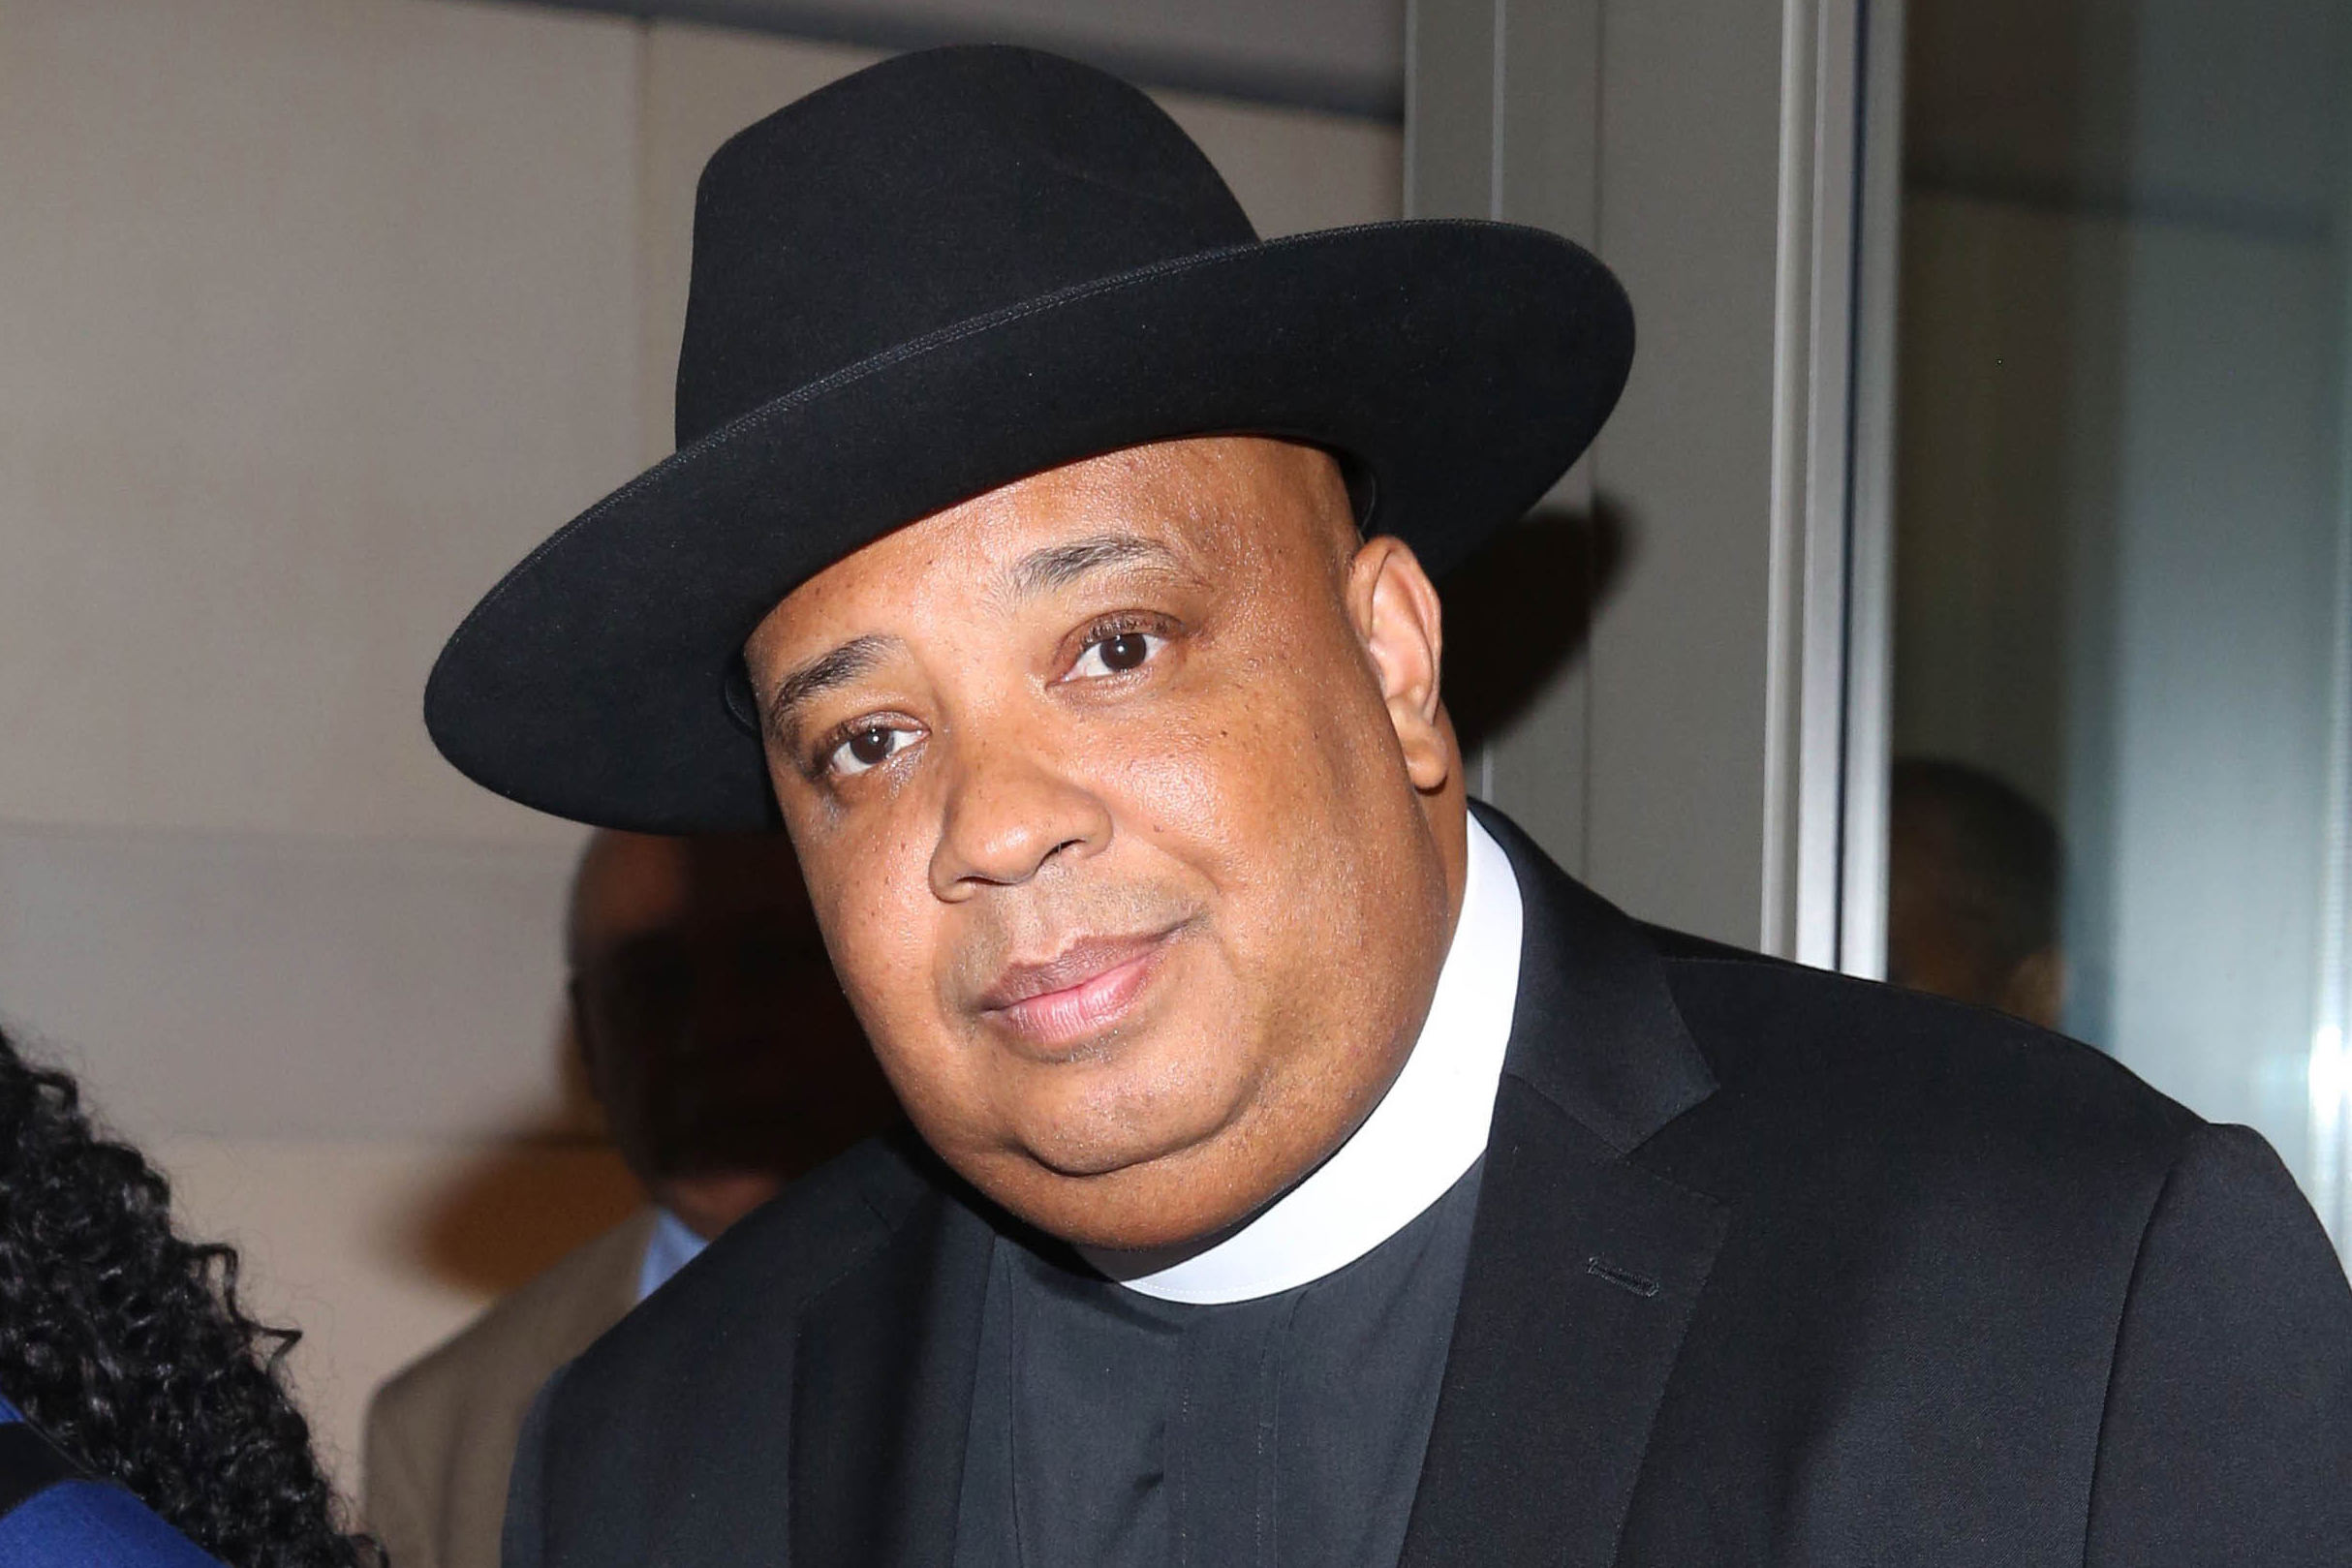 Diggy Christmas 2020 Hats Rev Run was high when he wrote 'Christmas in Hollis'